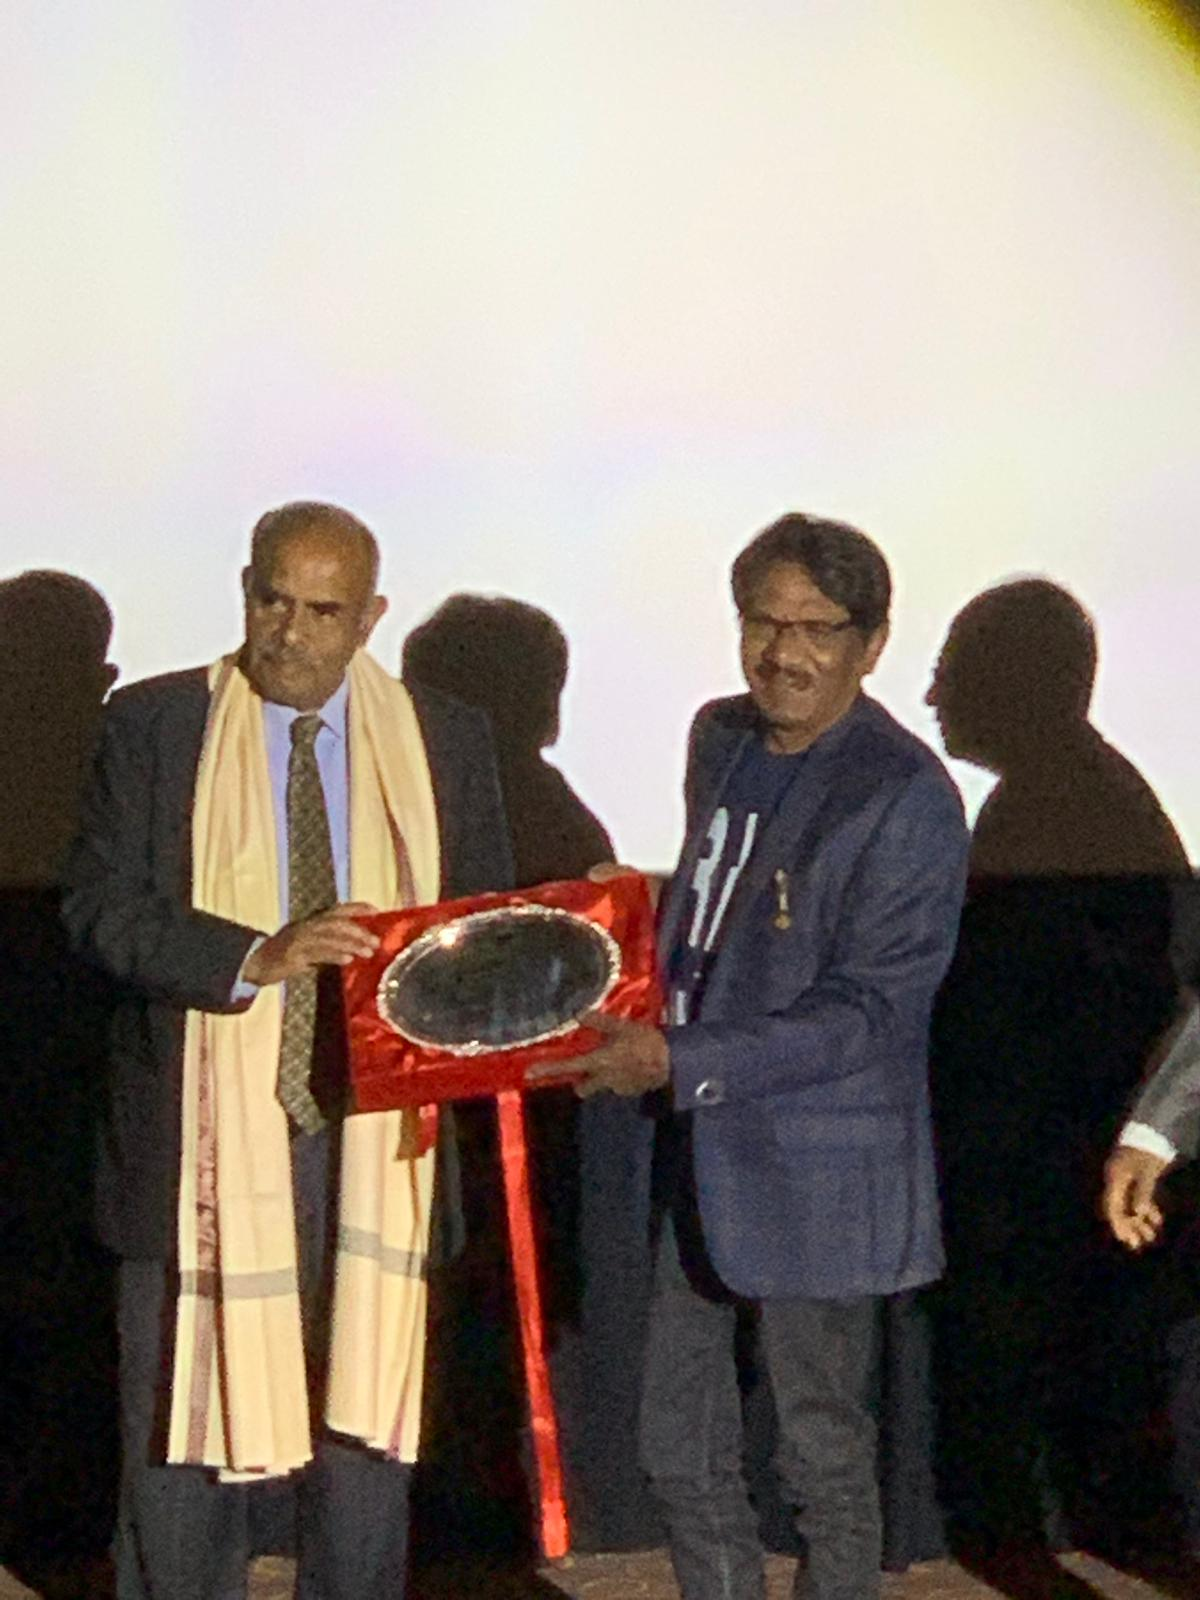 Ambassador Kesavapany presented the Lifetime Achievement Award 2019 to P.Bharathiraja. Photo courtesy: Connected to India